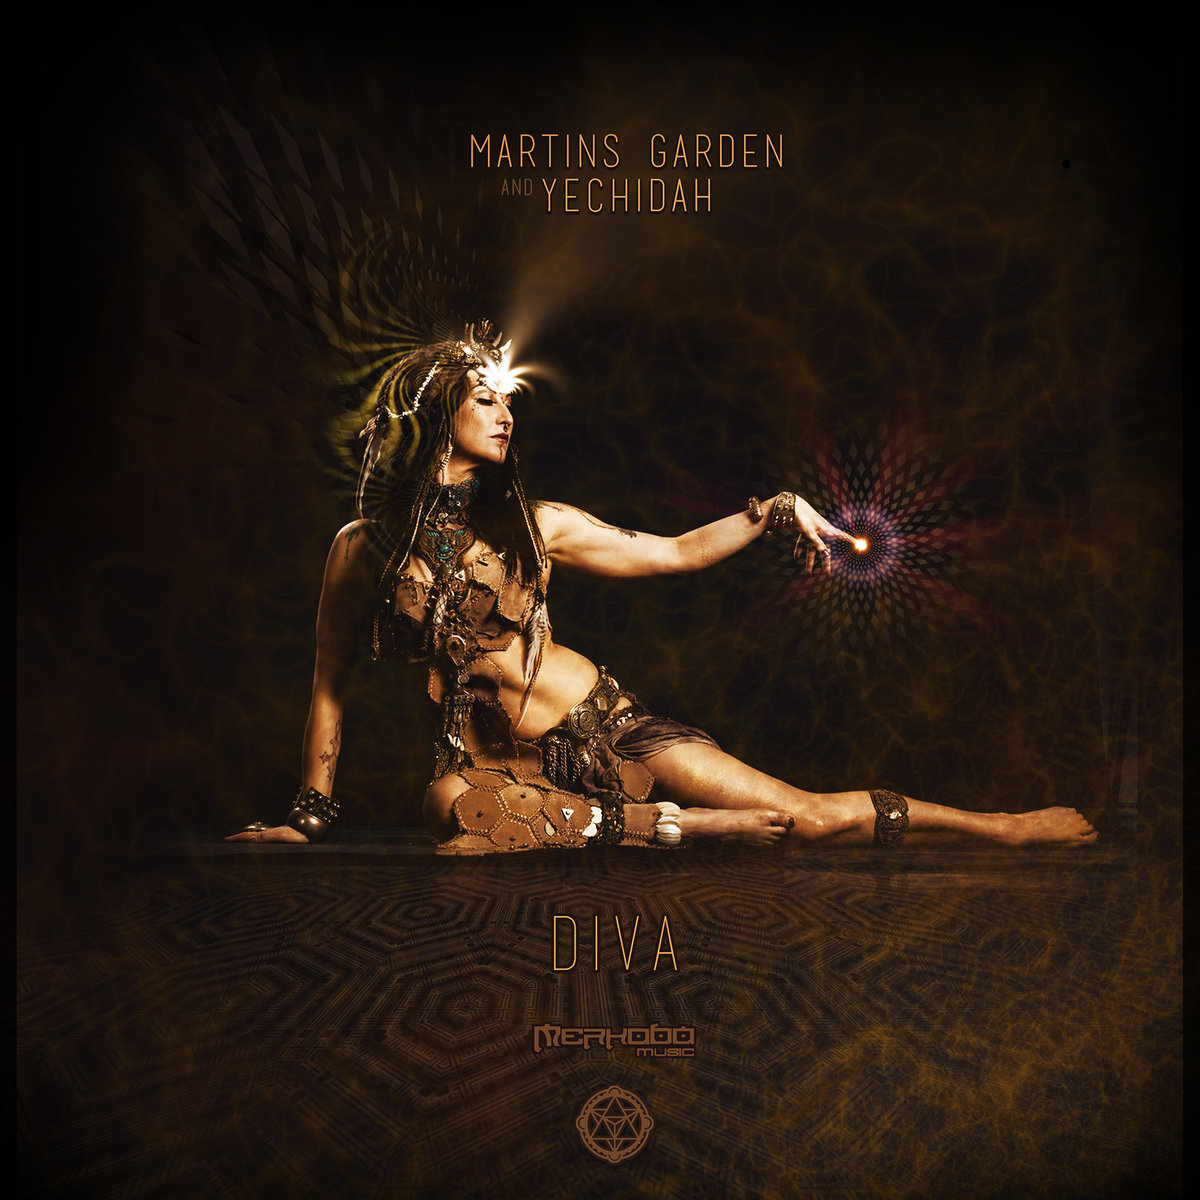 Martins Garden & Yechidah - Diva (artwork)